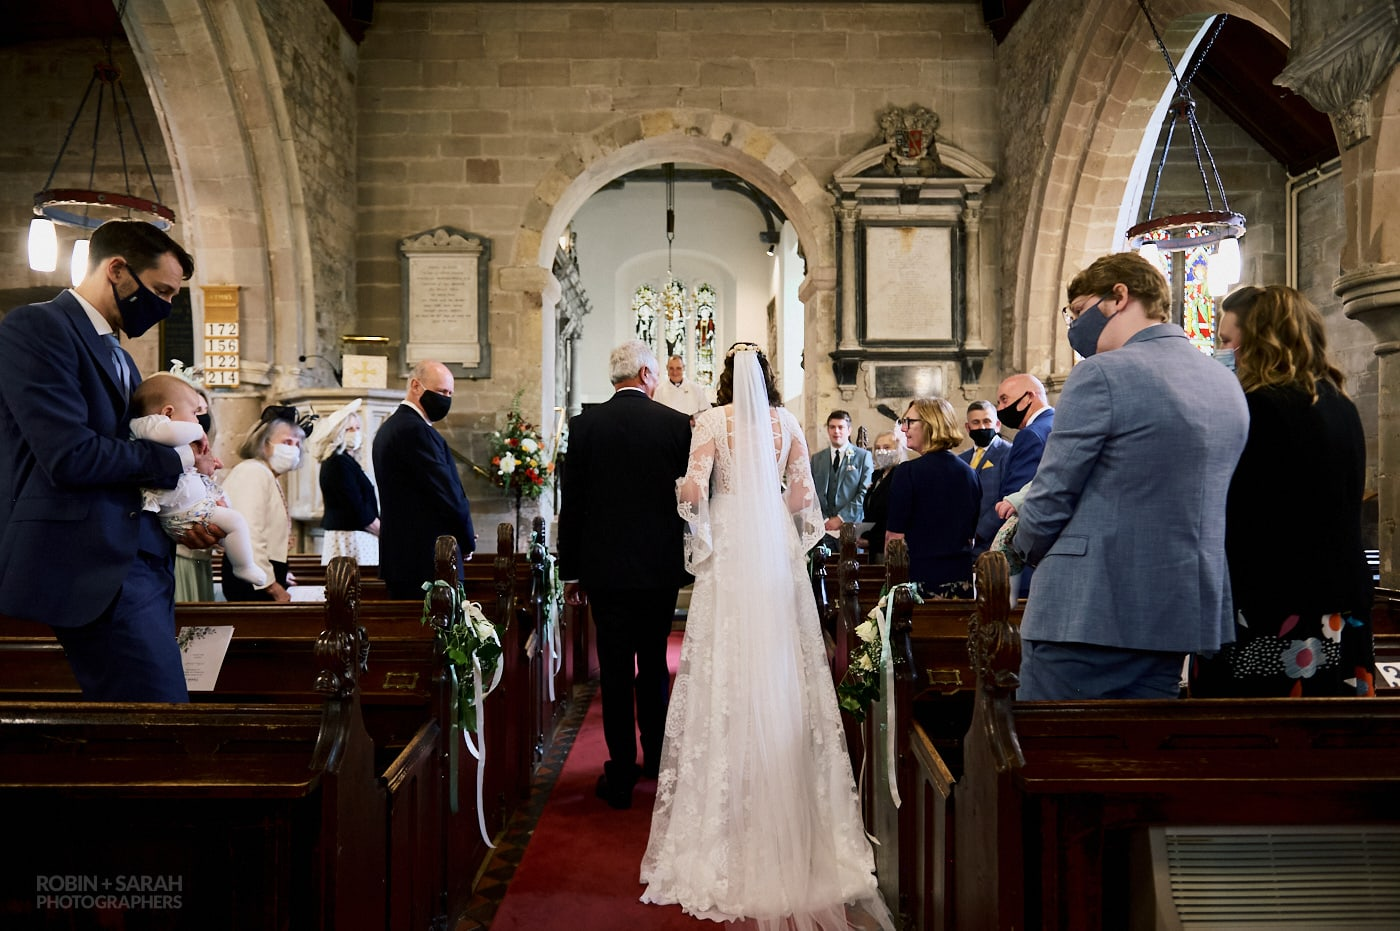 Bride and dad walk up aisle for wedding at St Leonard's Beoley